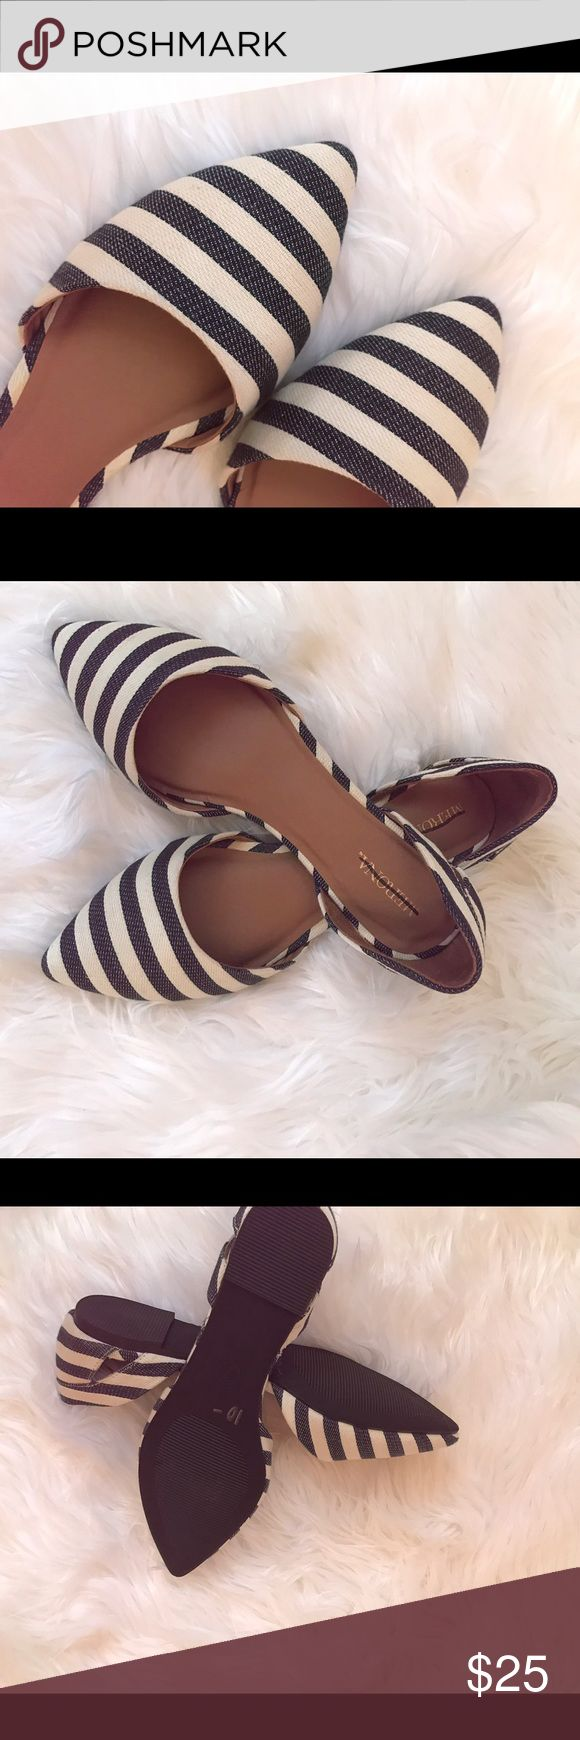 Blue and white striped d'Orsay flats Very cute blue and white striped flats that will complete a variety of looks. Shoes Flats & Loafers